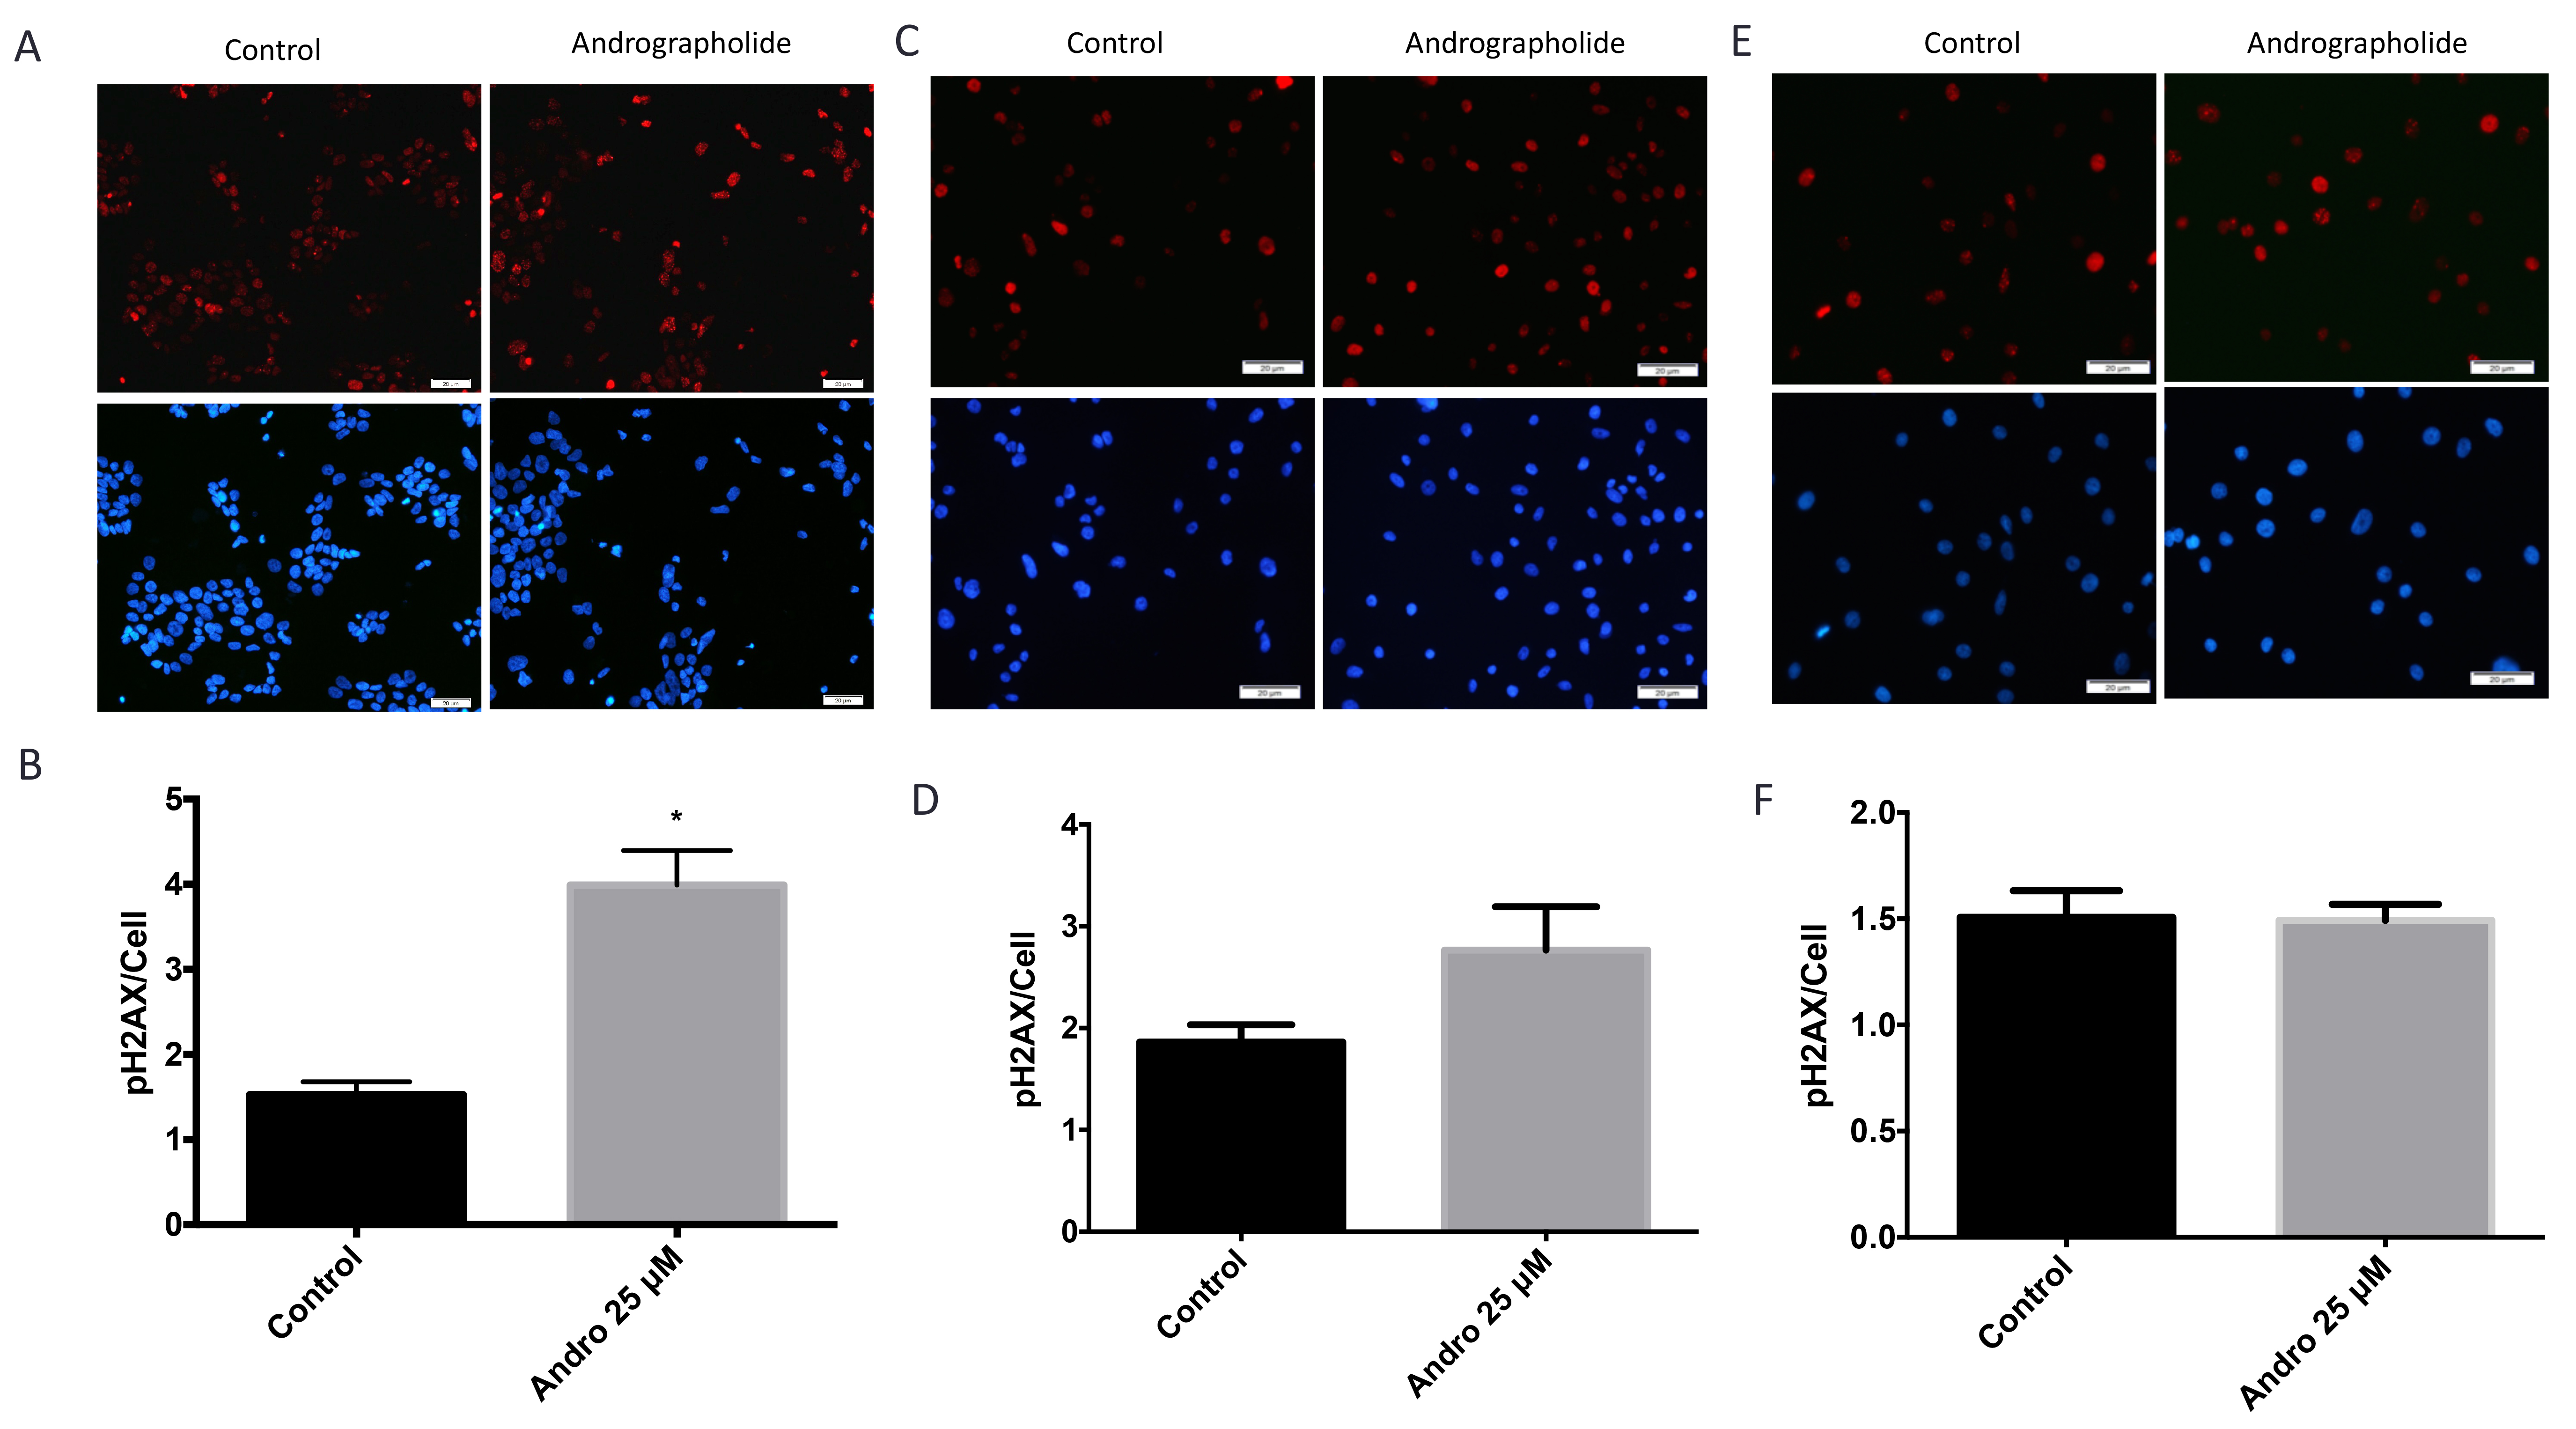 Andrographolide increased expression of phospho-H2AX histone in prostate cancer cells.